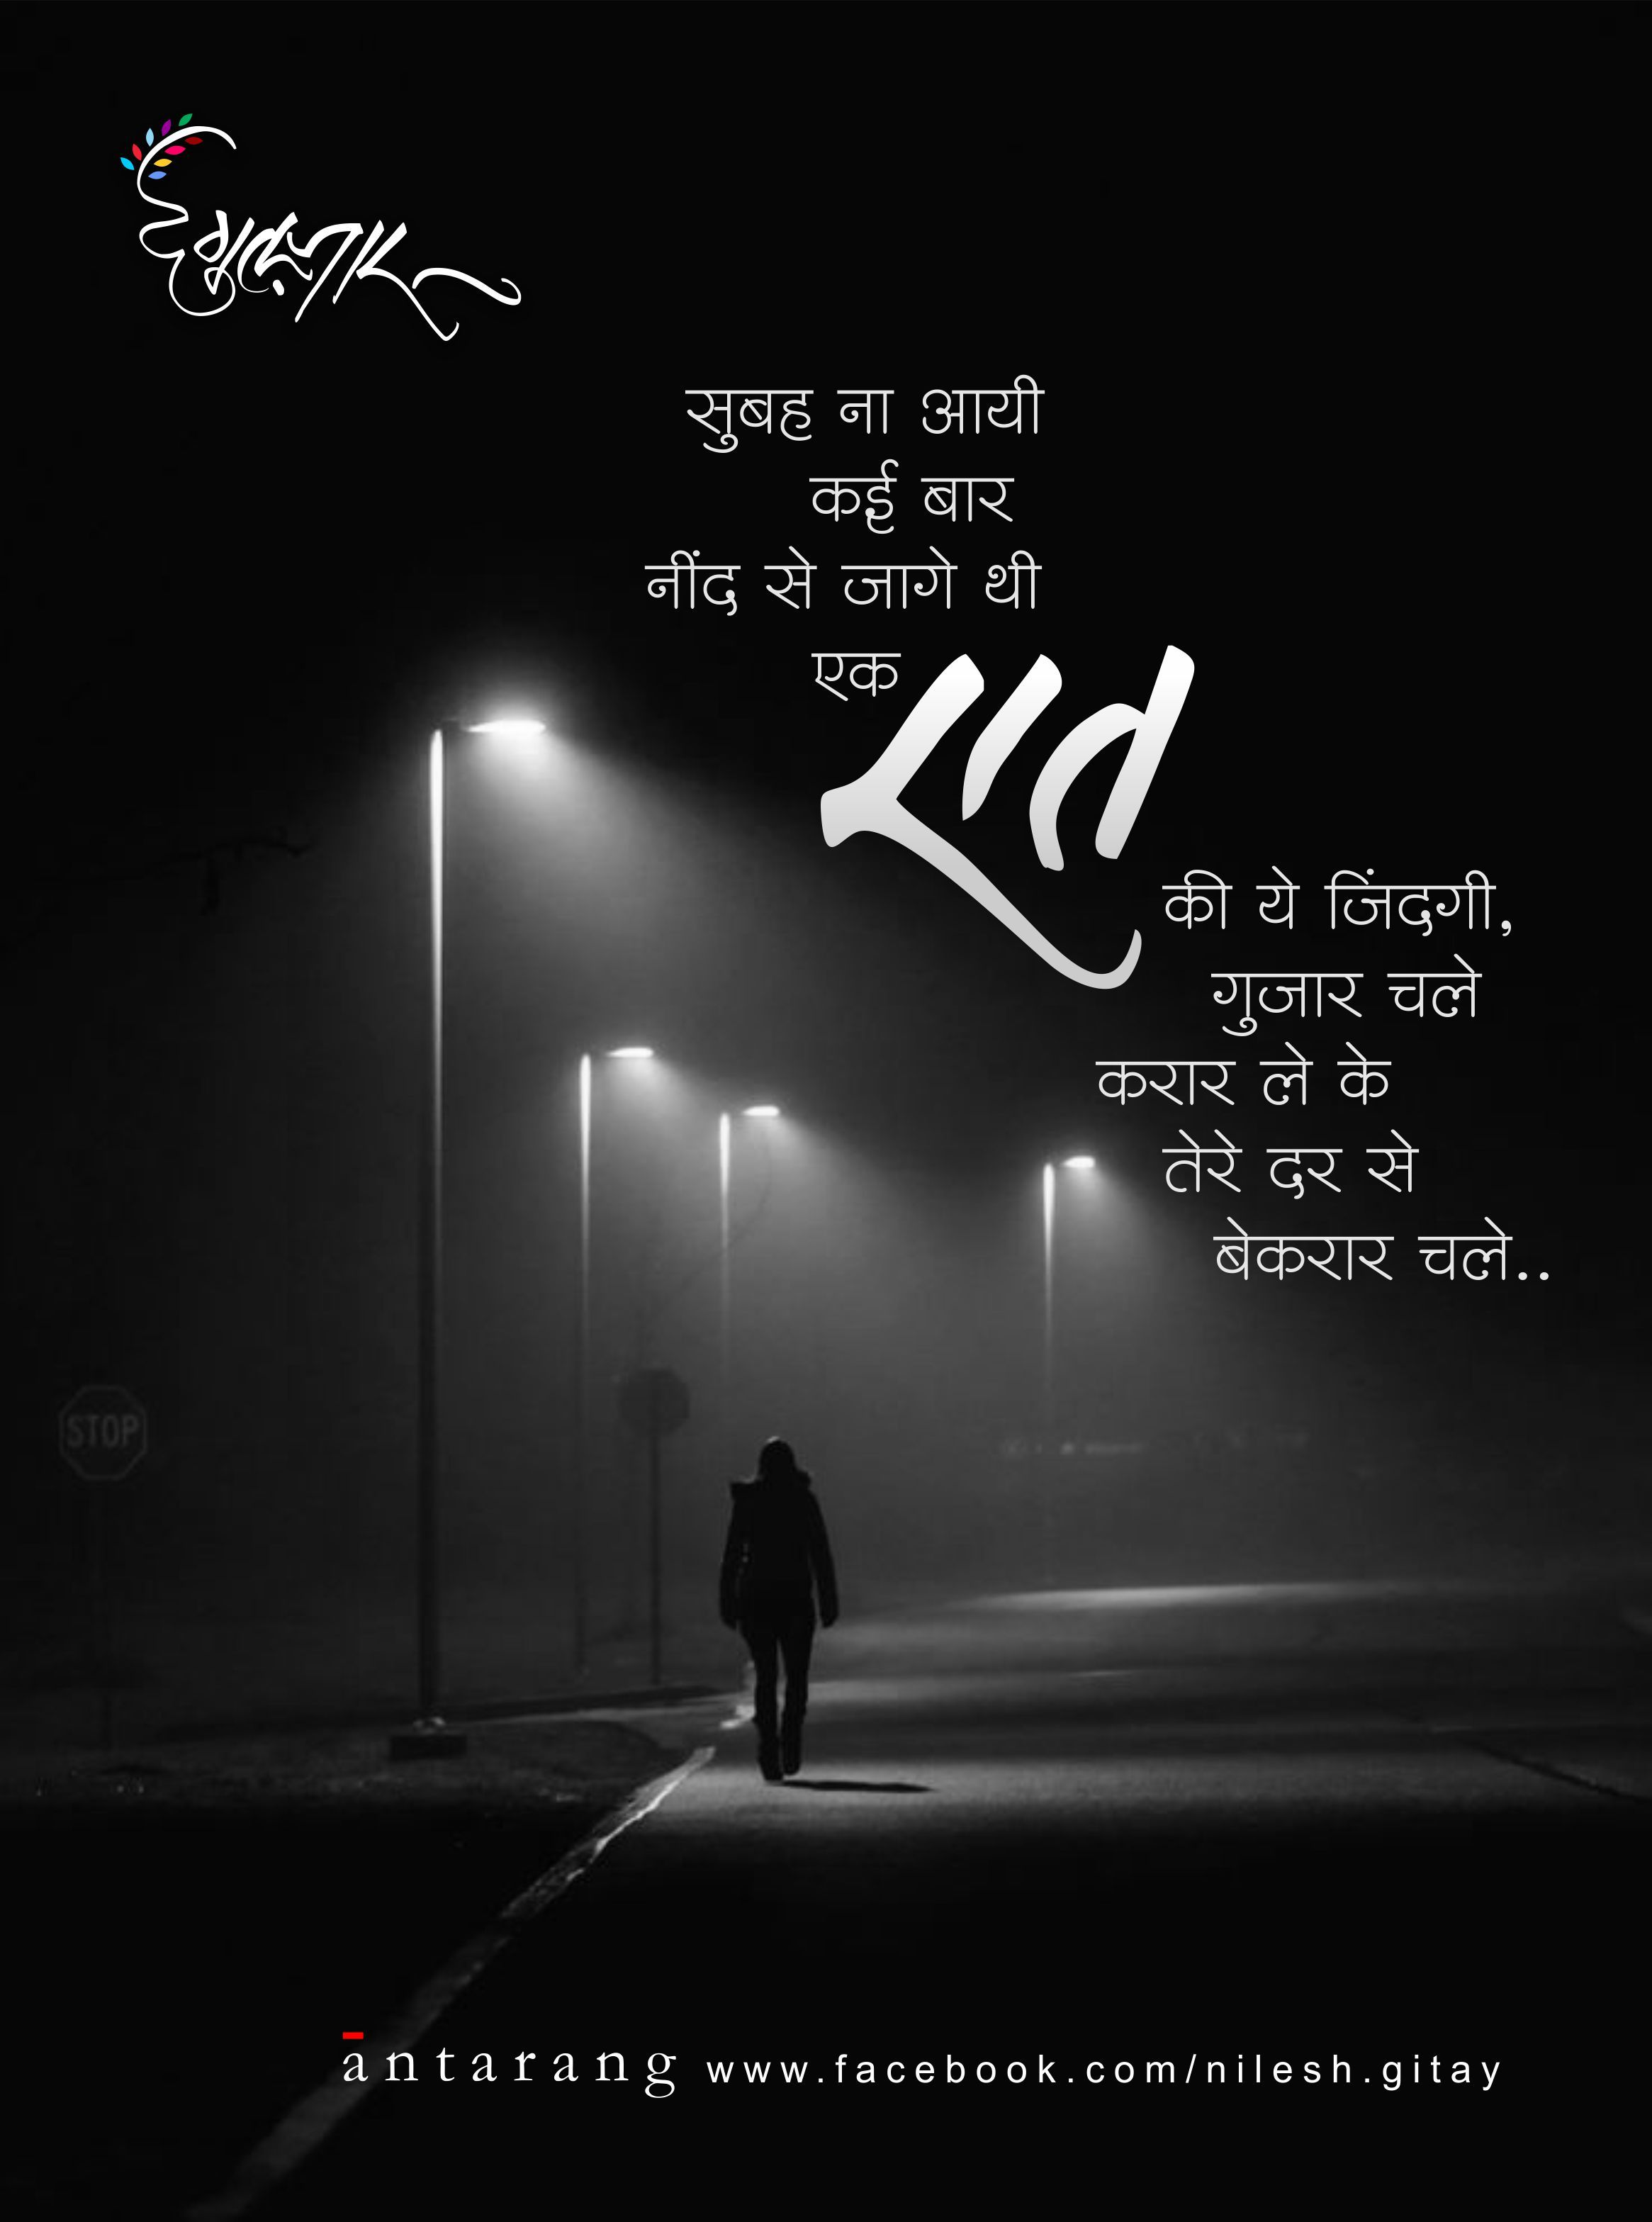 Pin By Nilesh Gitay On For Gulzar Poem Pinterest Love Quotes